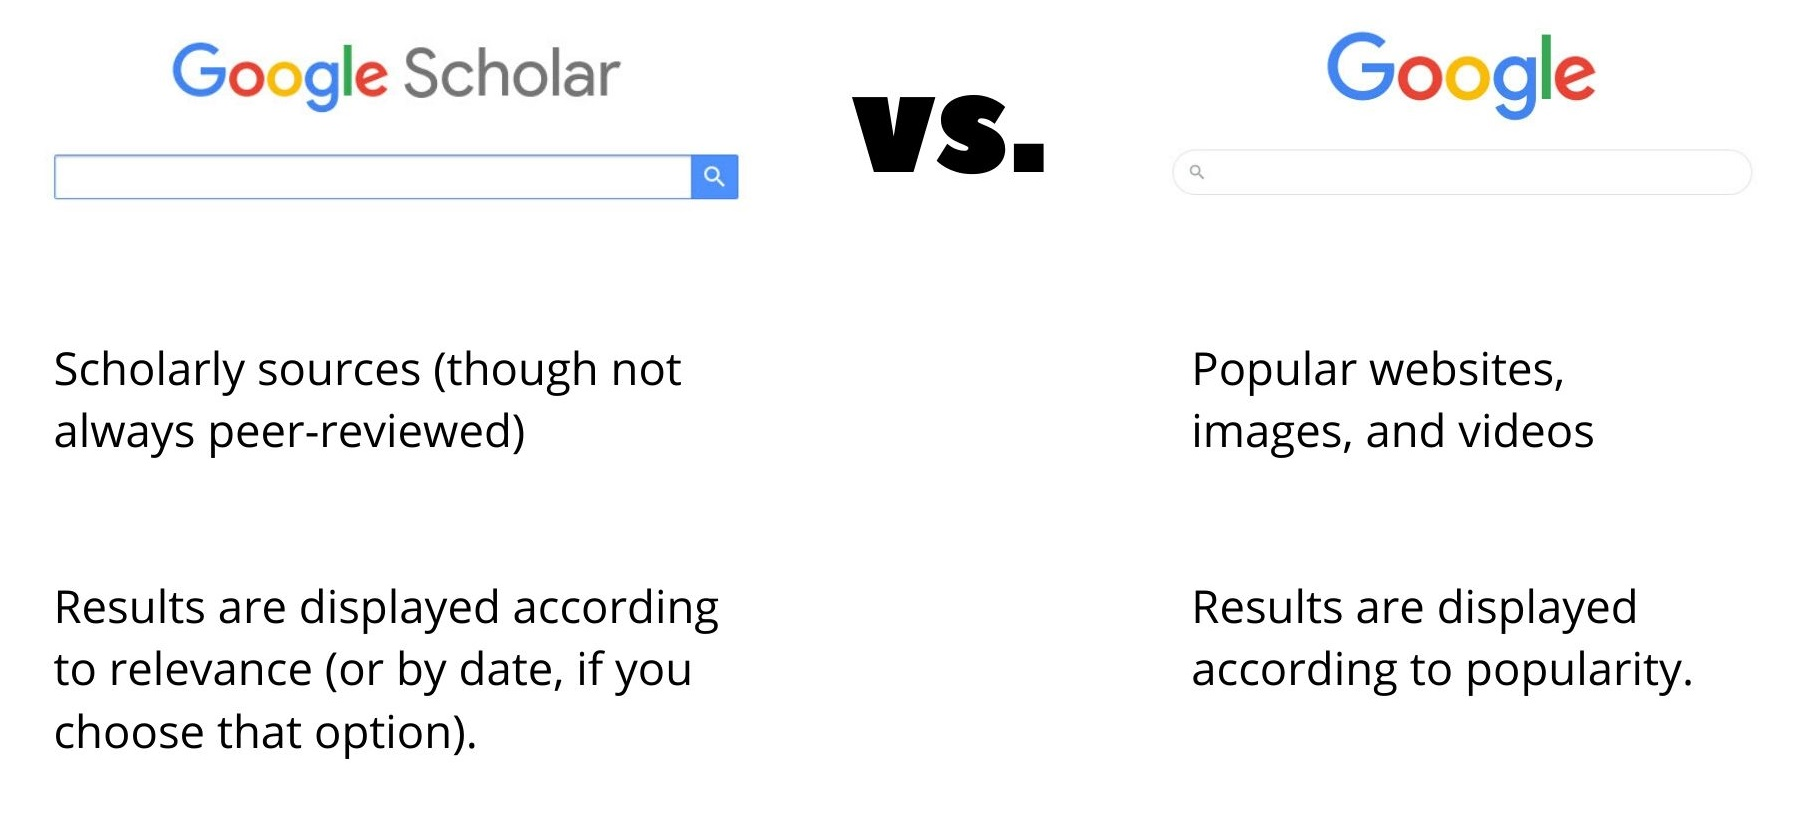 Google Scholar vs. Google: Google Scholar has scholarly articles and organizes them according to the relevance to your search. Google has mostly popular sources, and they're organized according to their popularity.